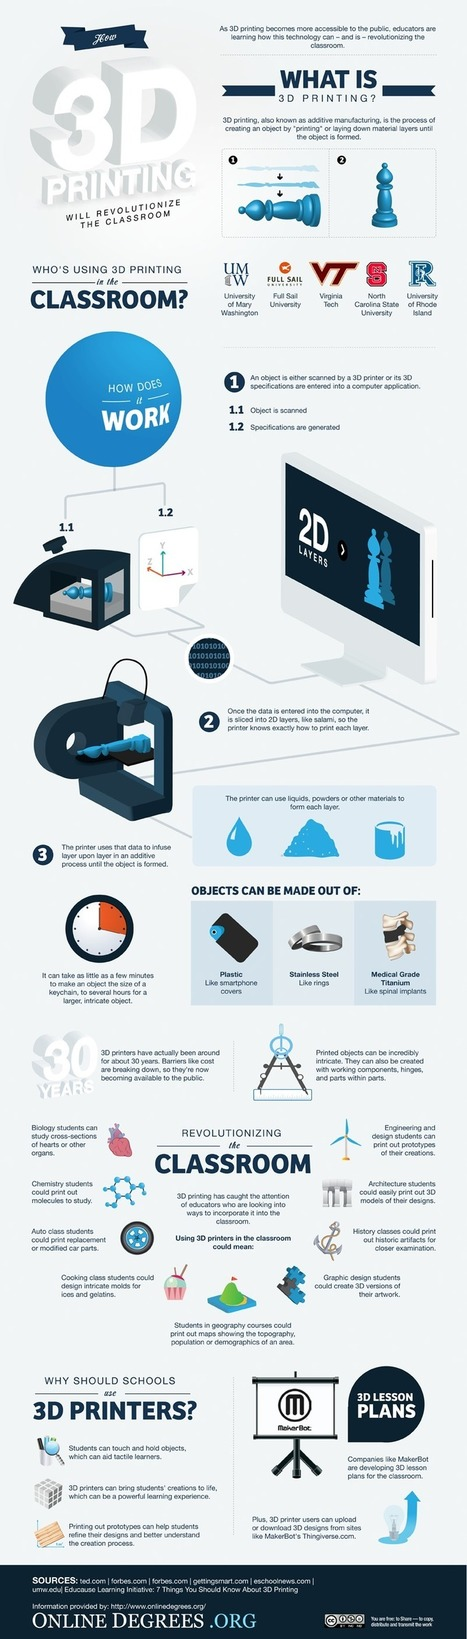 10 Ways 3D Printing Can Be Used In Education (Infographic) | 3D printing, Open hardware & Cool things | Scoop.it